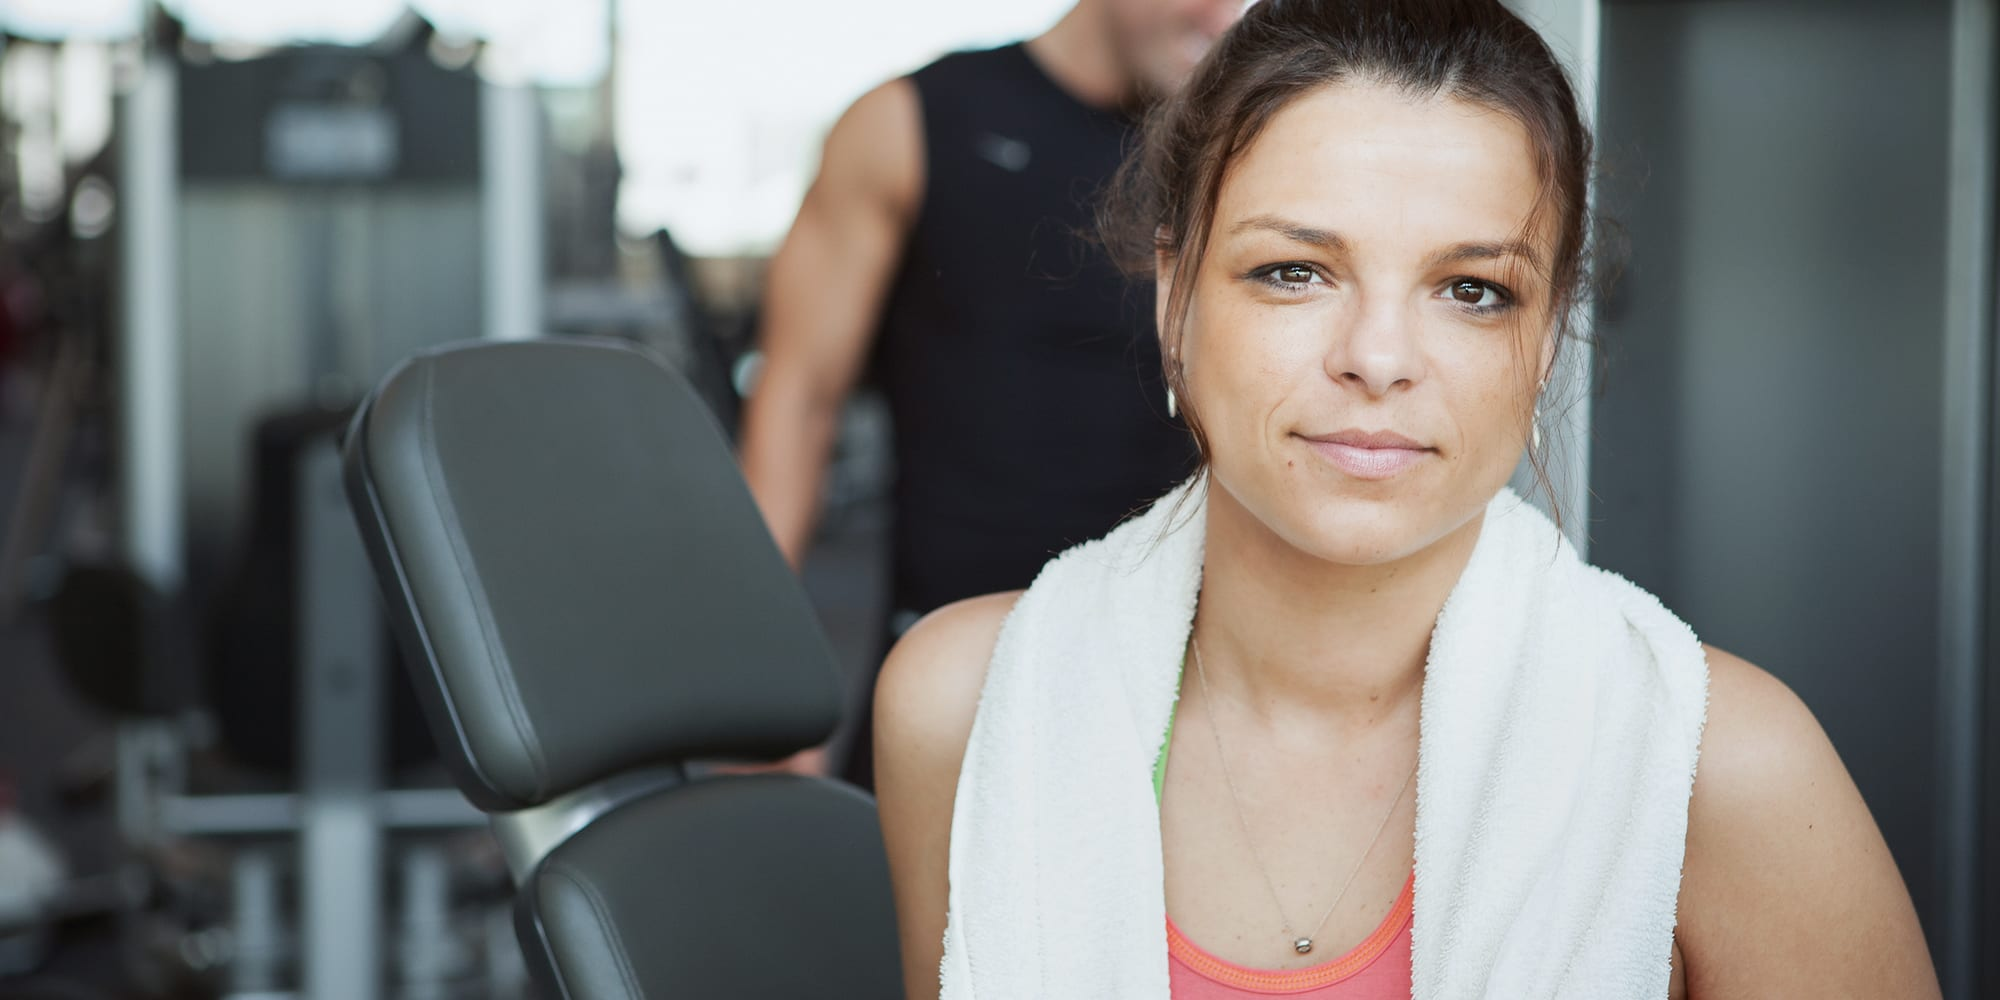 Woman at gym with Monarch Towel draped over her neck